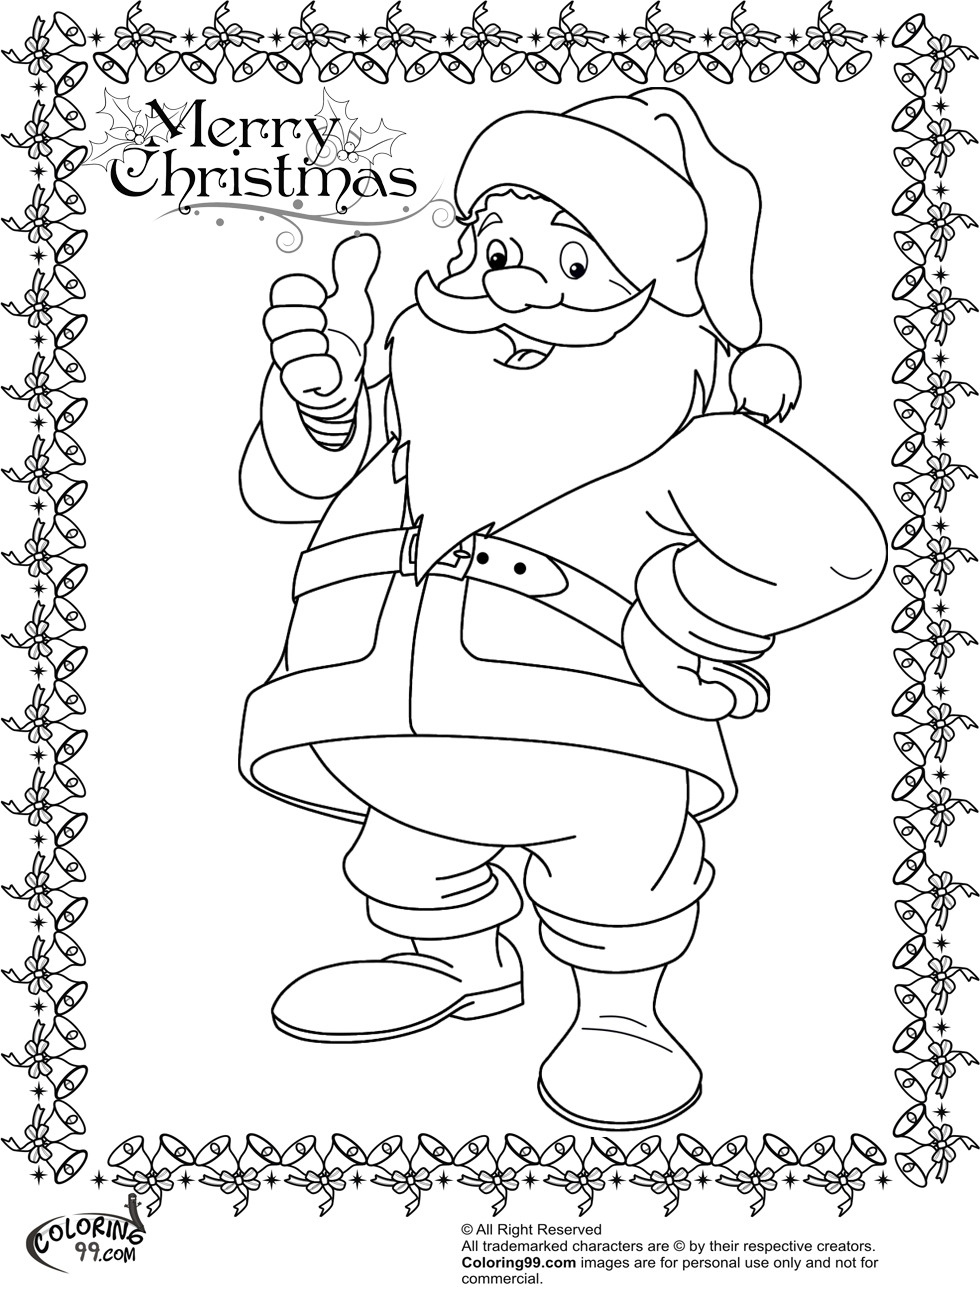 santa claus coloring pages online - photo#10